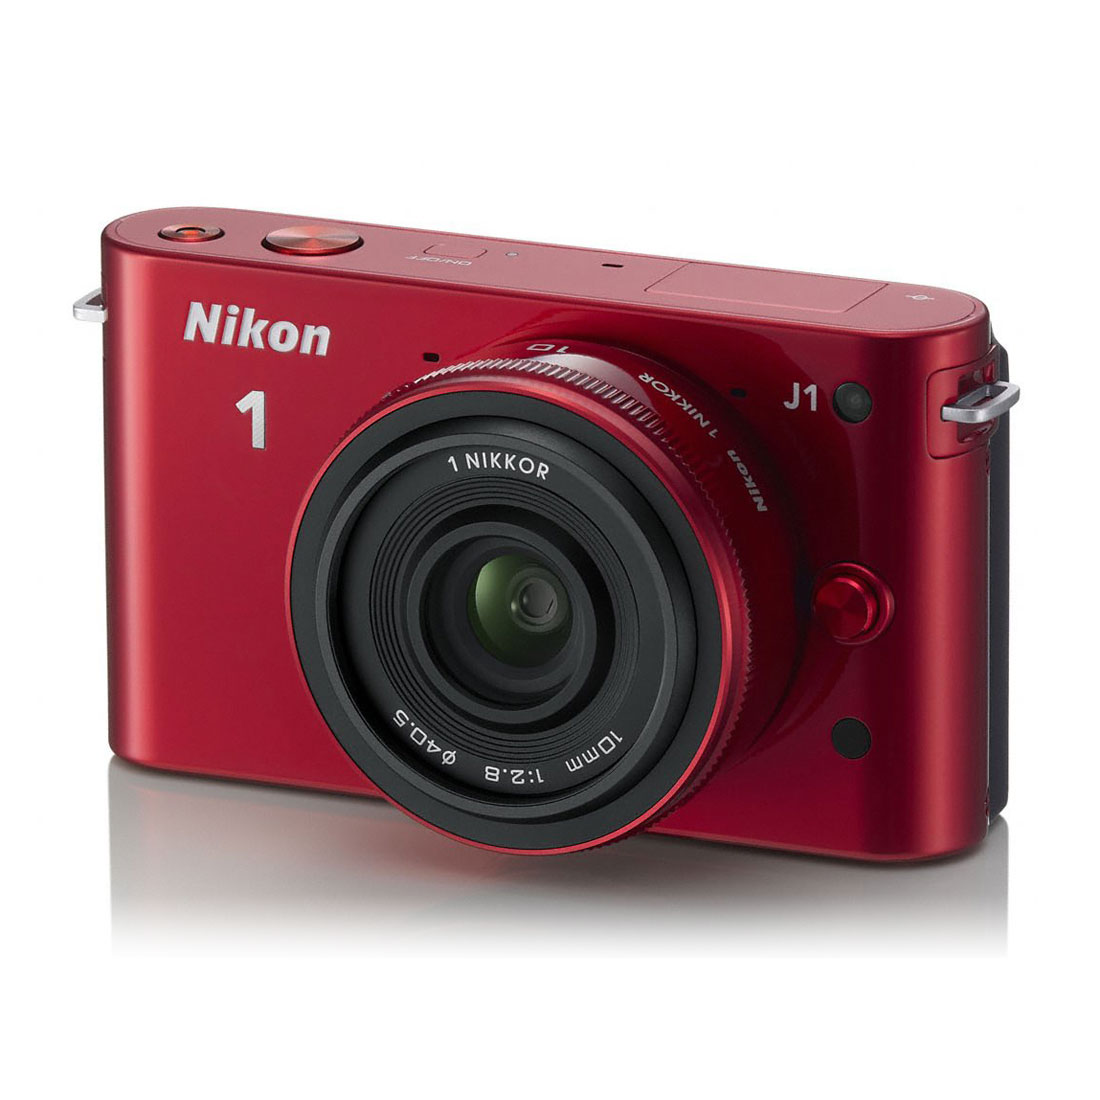 nikon 1 j1 rouge objectif 1 nikkor 10 mm f 2 8. Black Bedroom Furniture Sets. Home Design Ideas